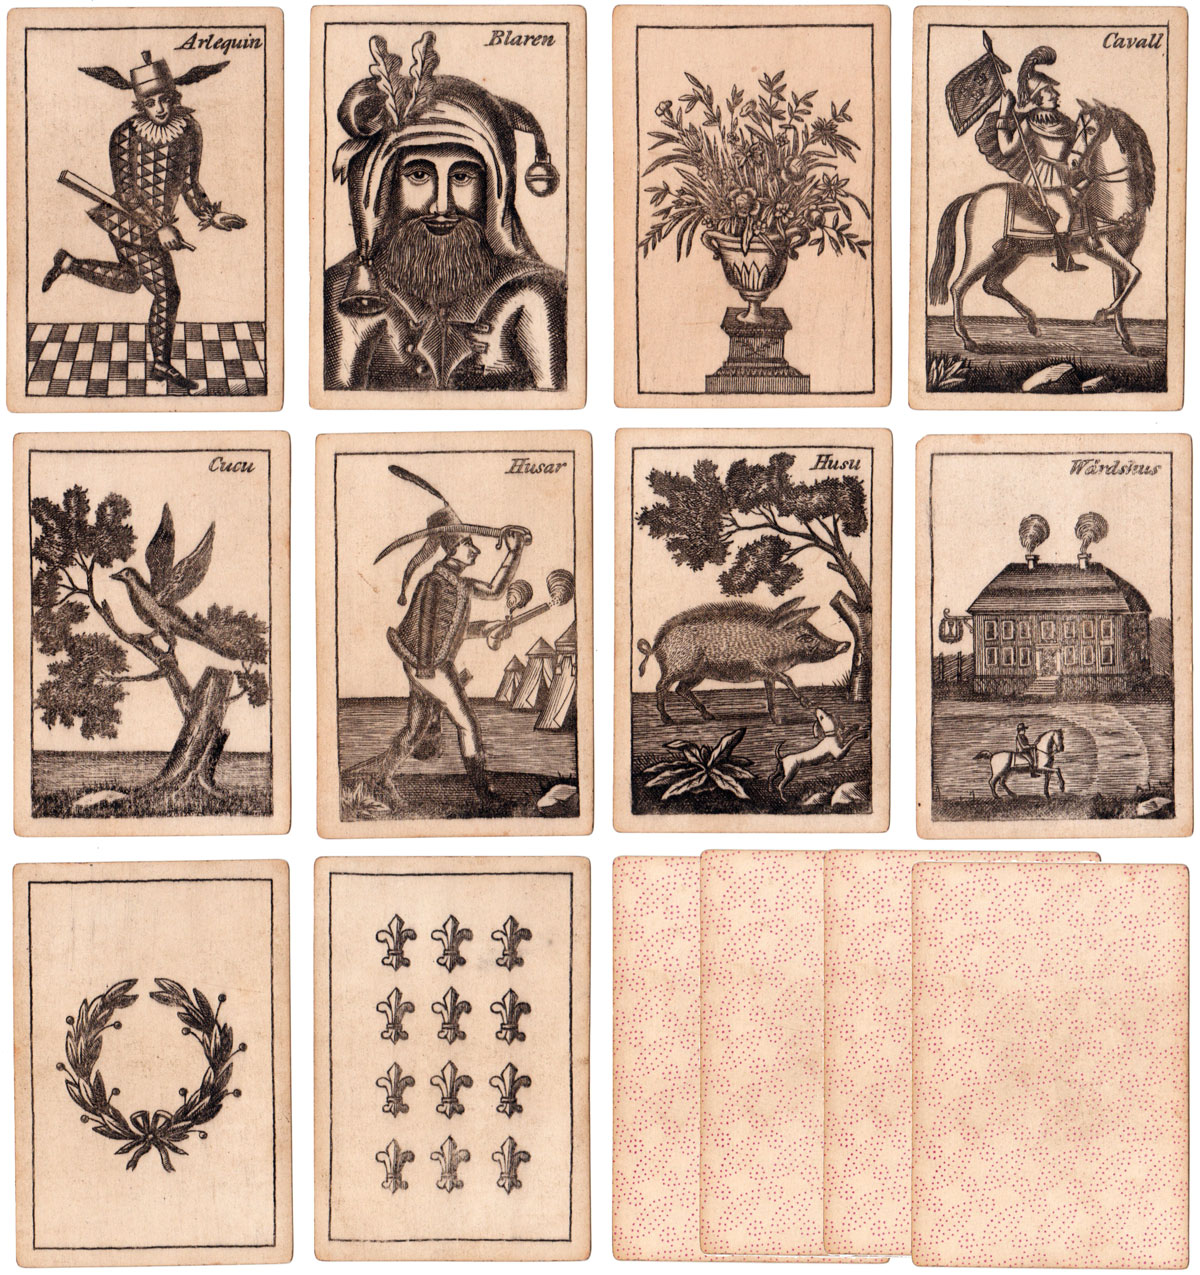 'Kille' cards by an unidentified maker from the late 18th century